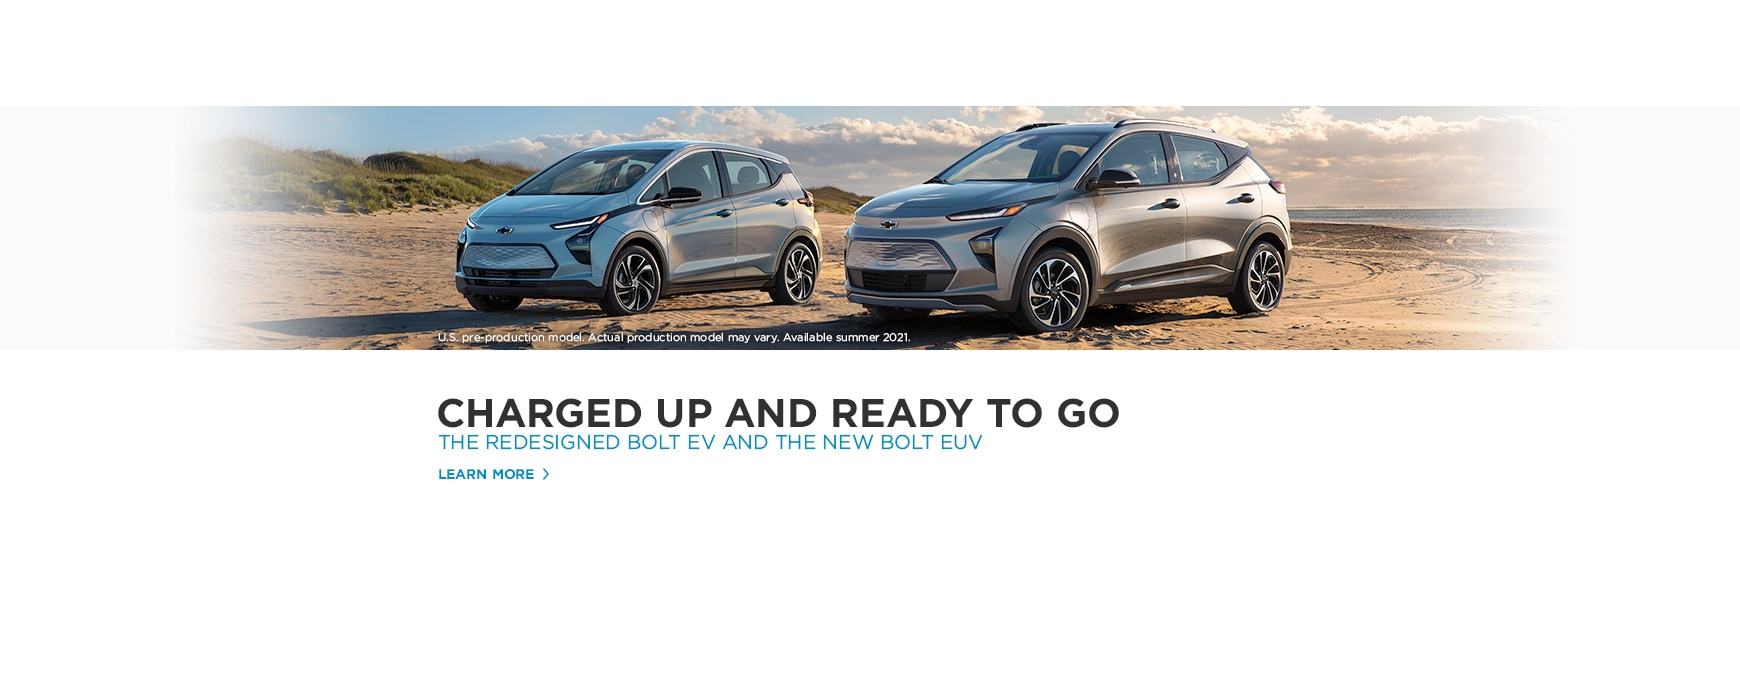 CHARGED UP AND READY TO GO.  THE REDESIGNED BOLT EV AND THE NEW BOLT EUV  U.S. pre-production model. Actual production model may vary. Available summer 2021. <LEARN MORE>